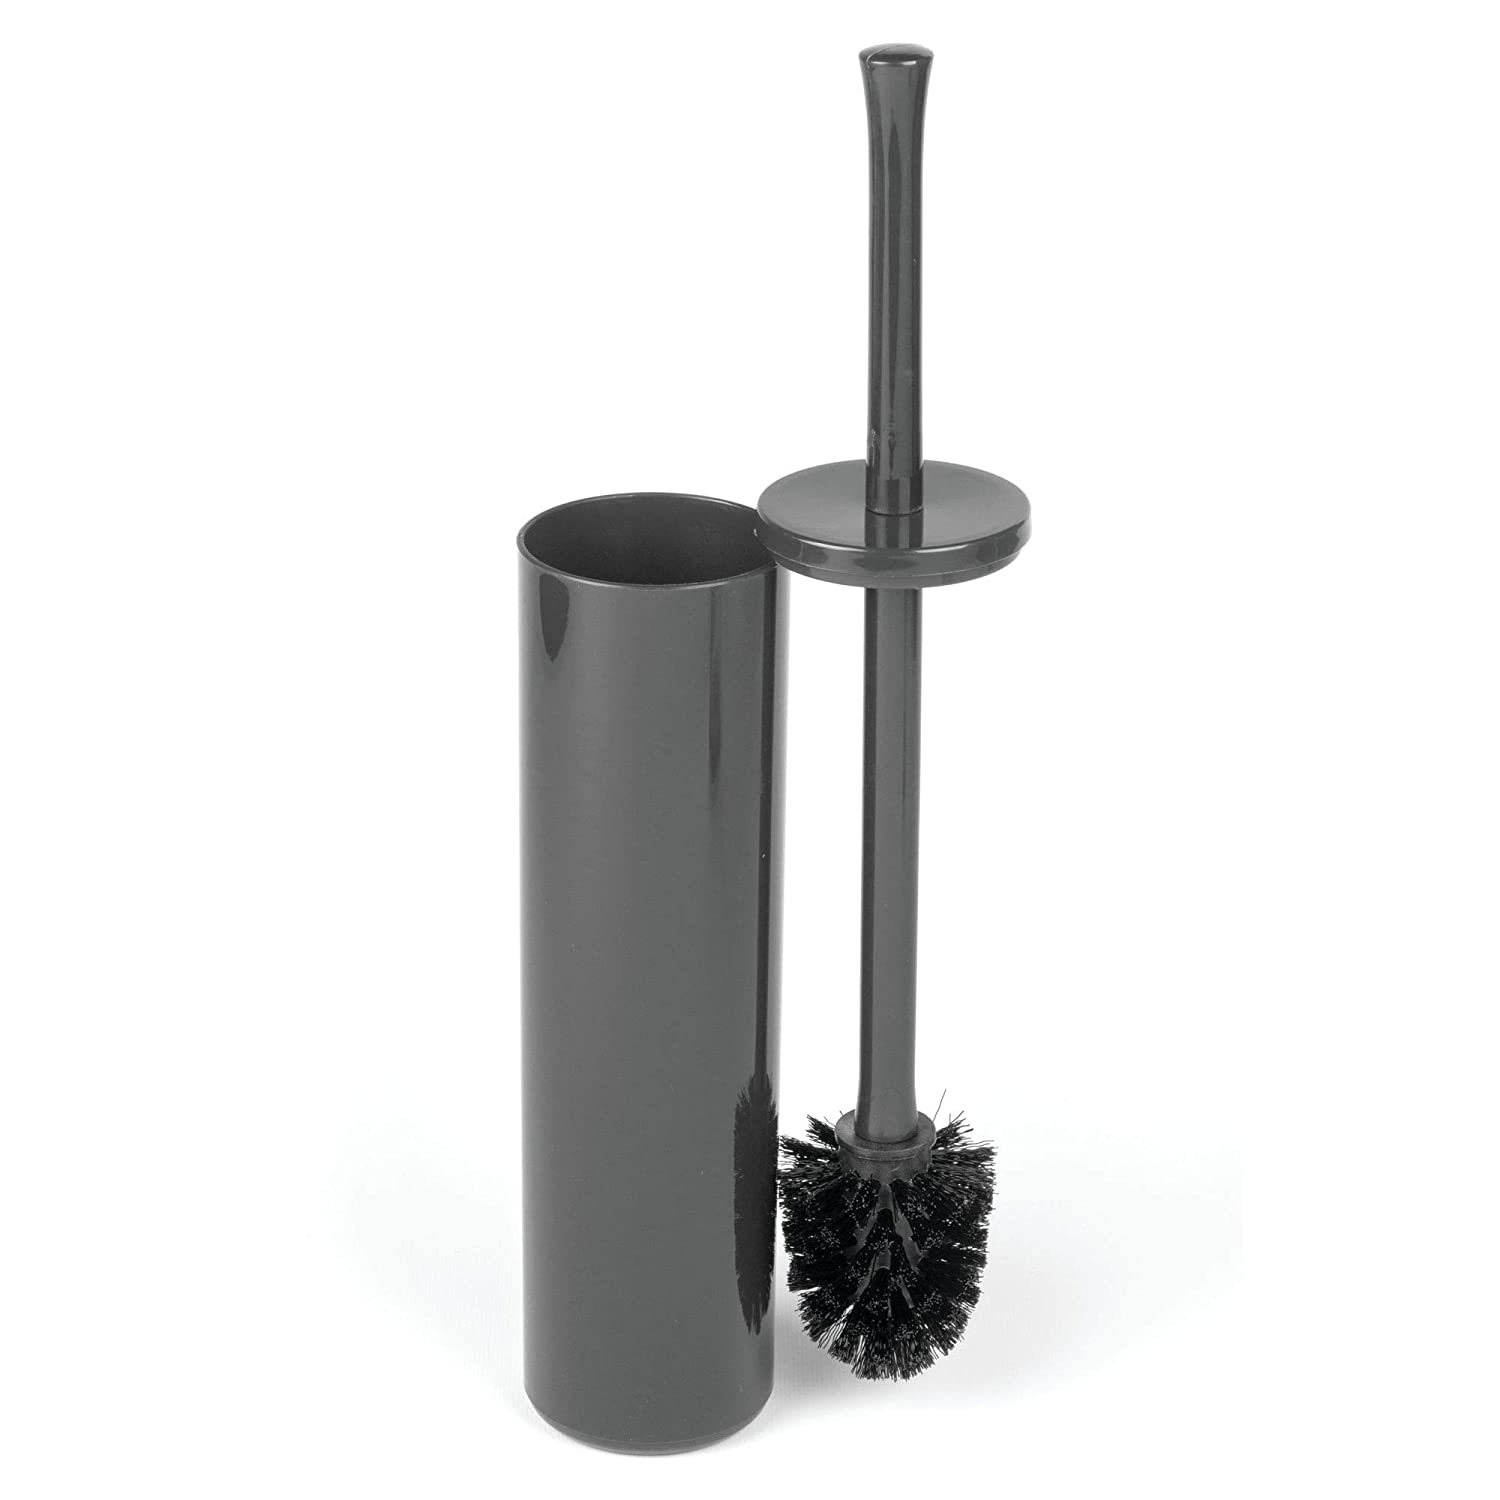 2 Pack Sturdy Covered Brush Modern mDesign Extra Slim Compact Freestanding Plastic Toilet Bowl Brush and Holder for Bathroom Storage and Organization Space Saving Deep Cleaning Charcoal Gray MetroDecor 8646MDBSTEU